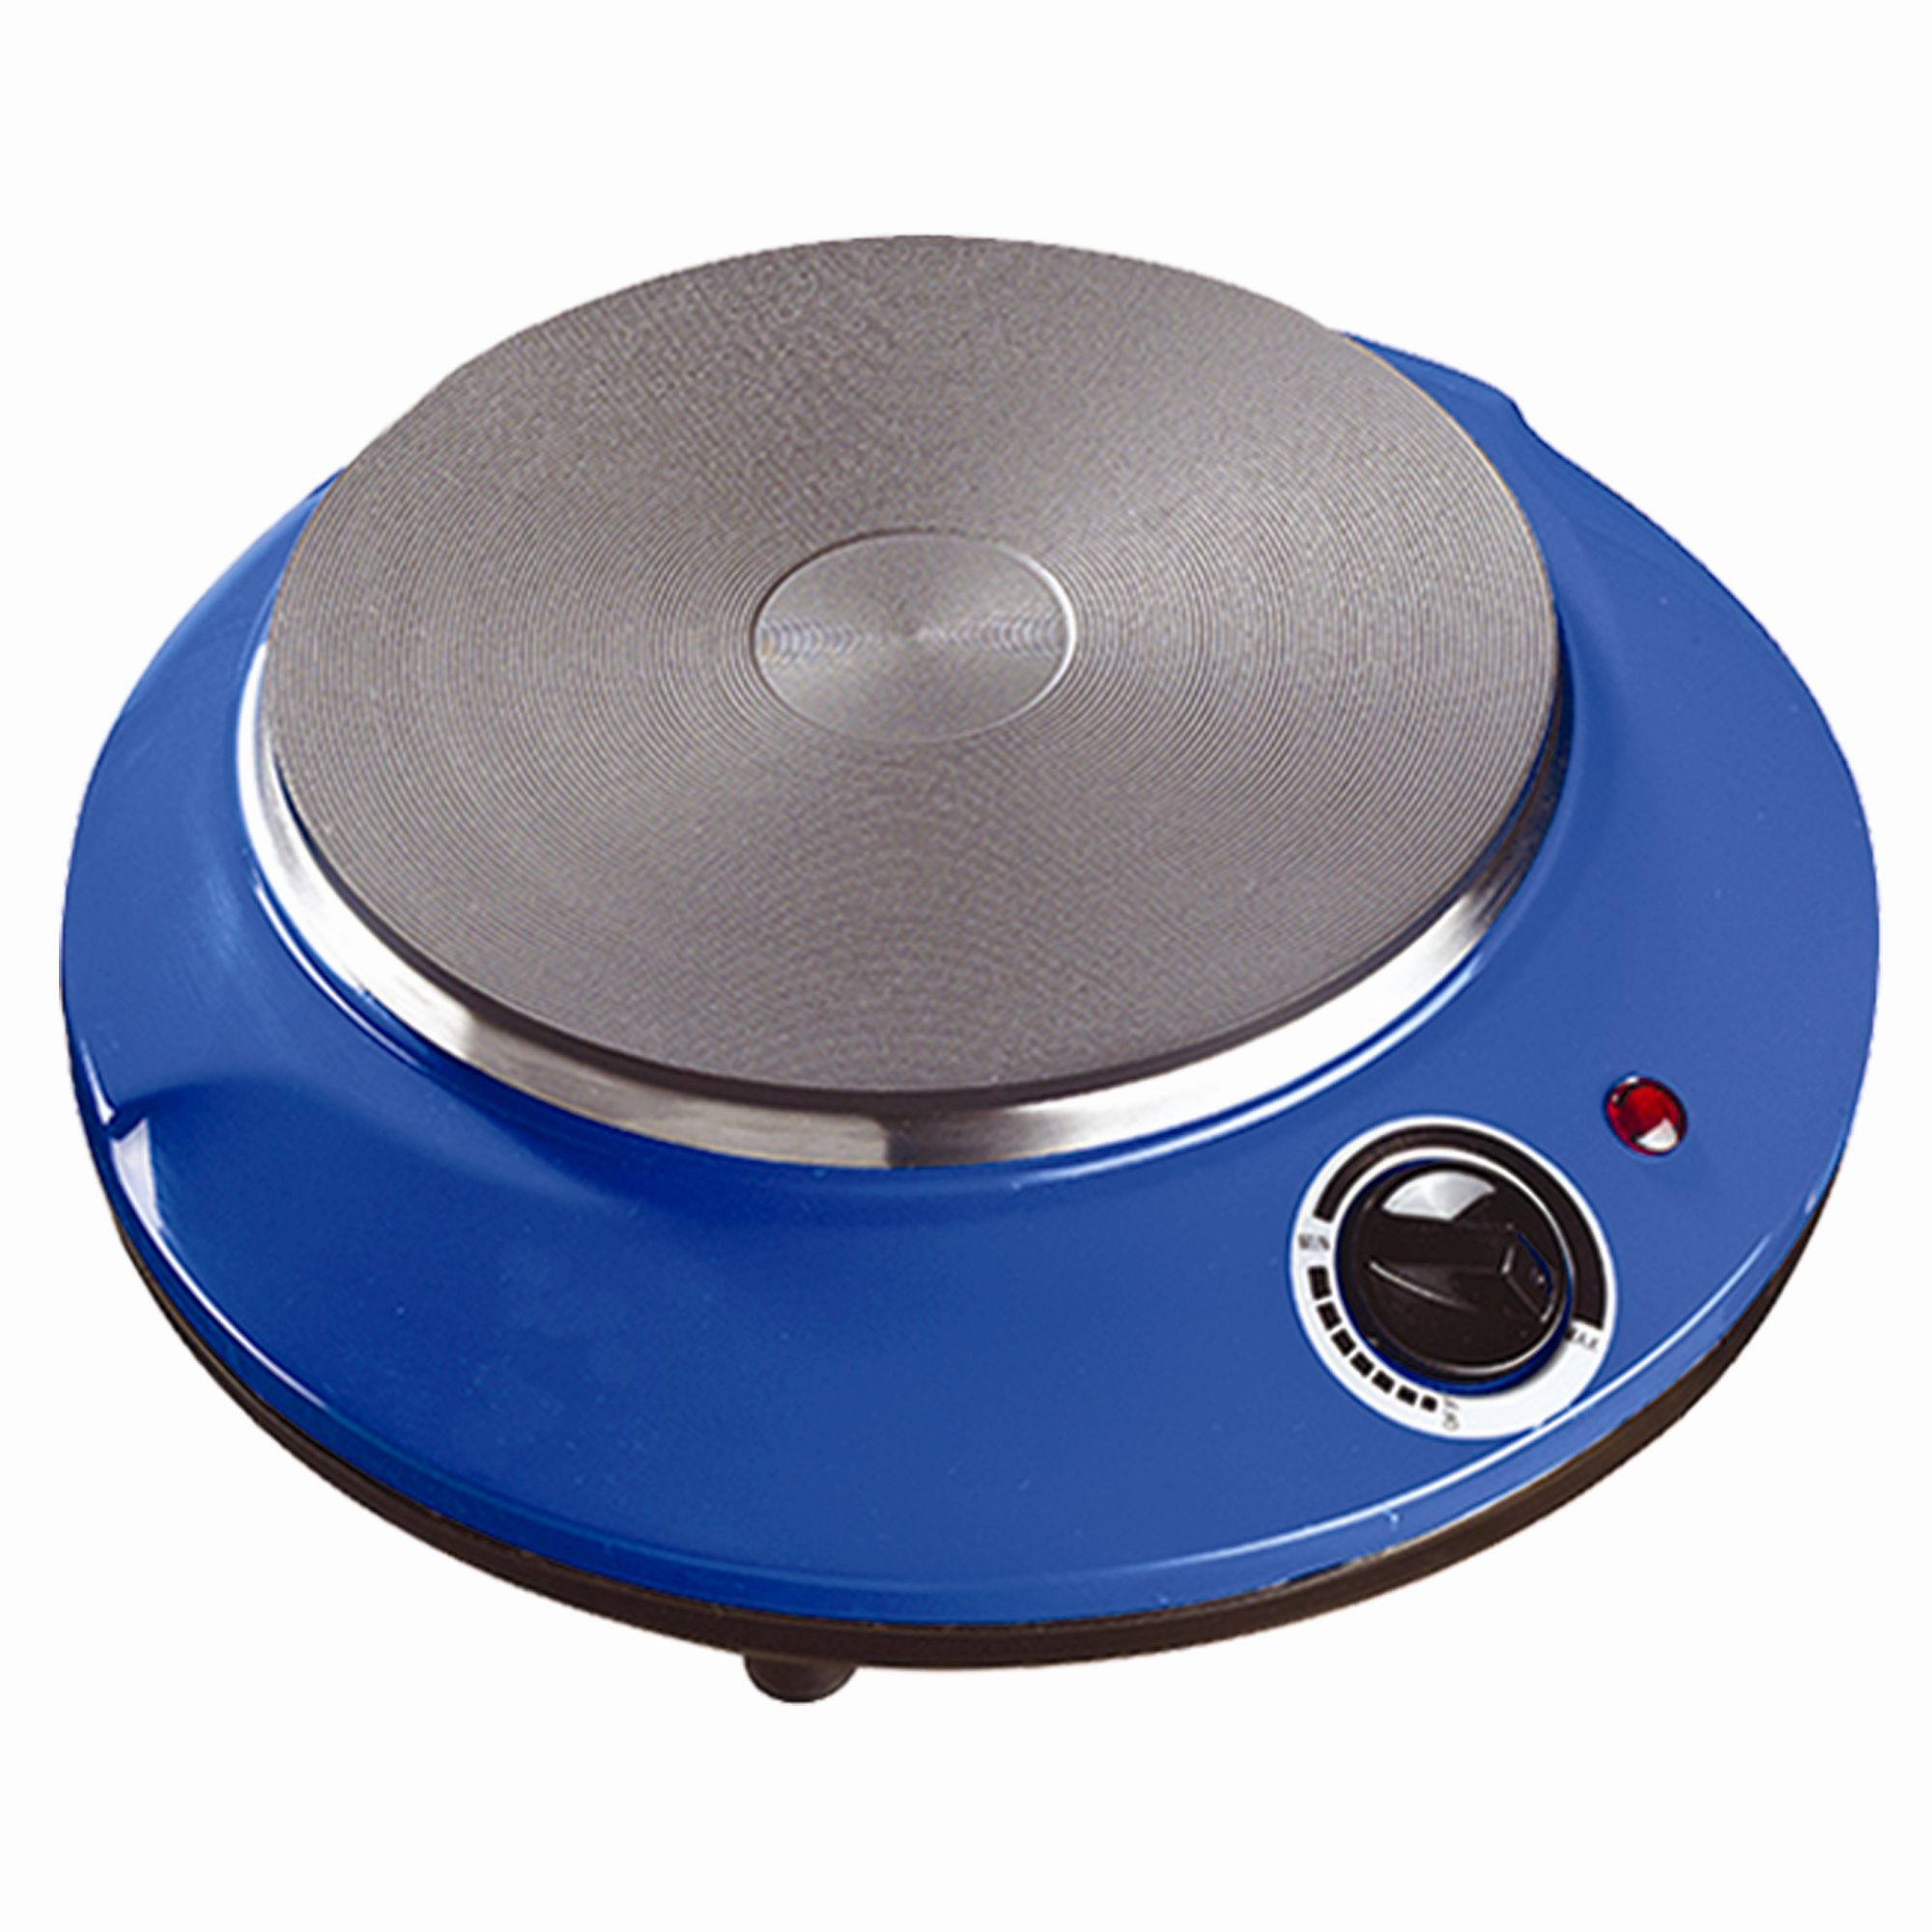 Cookinex Single Cast Burner Hot Plate - Blue